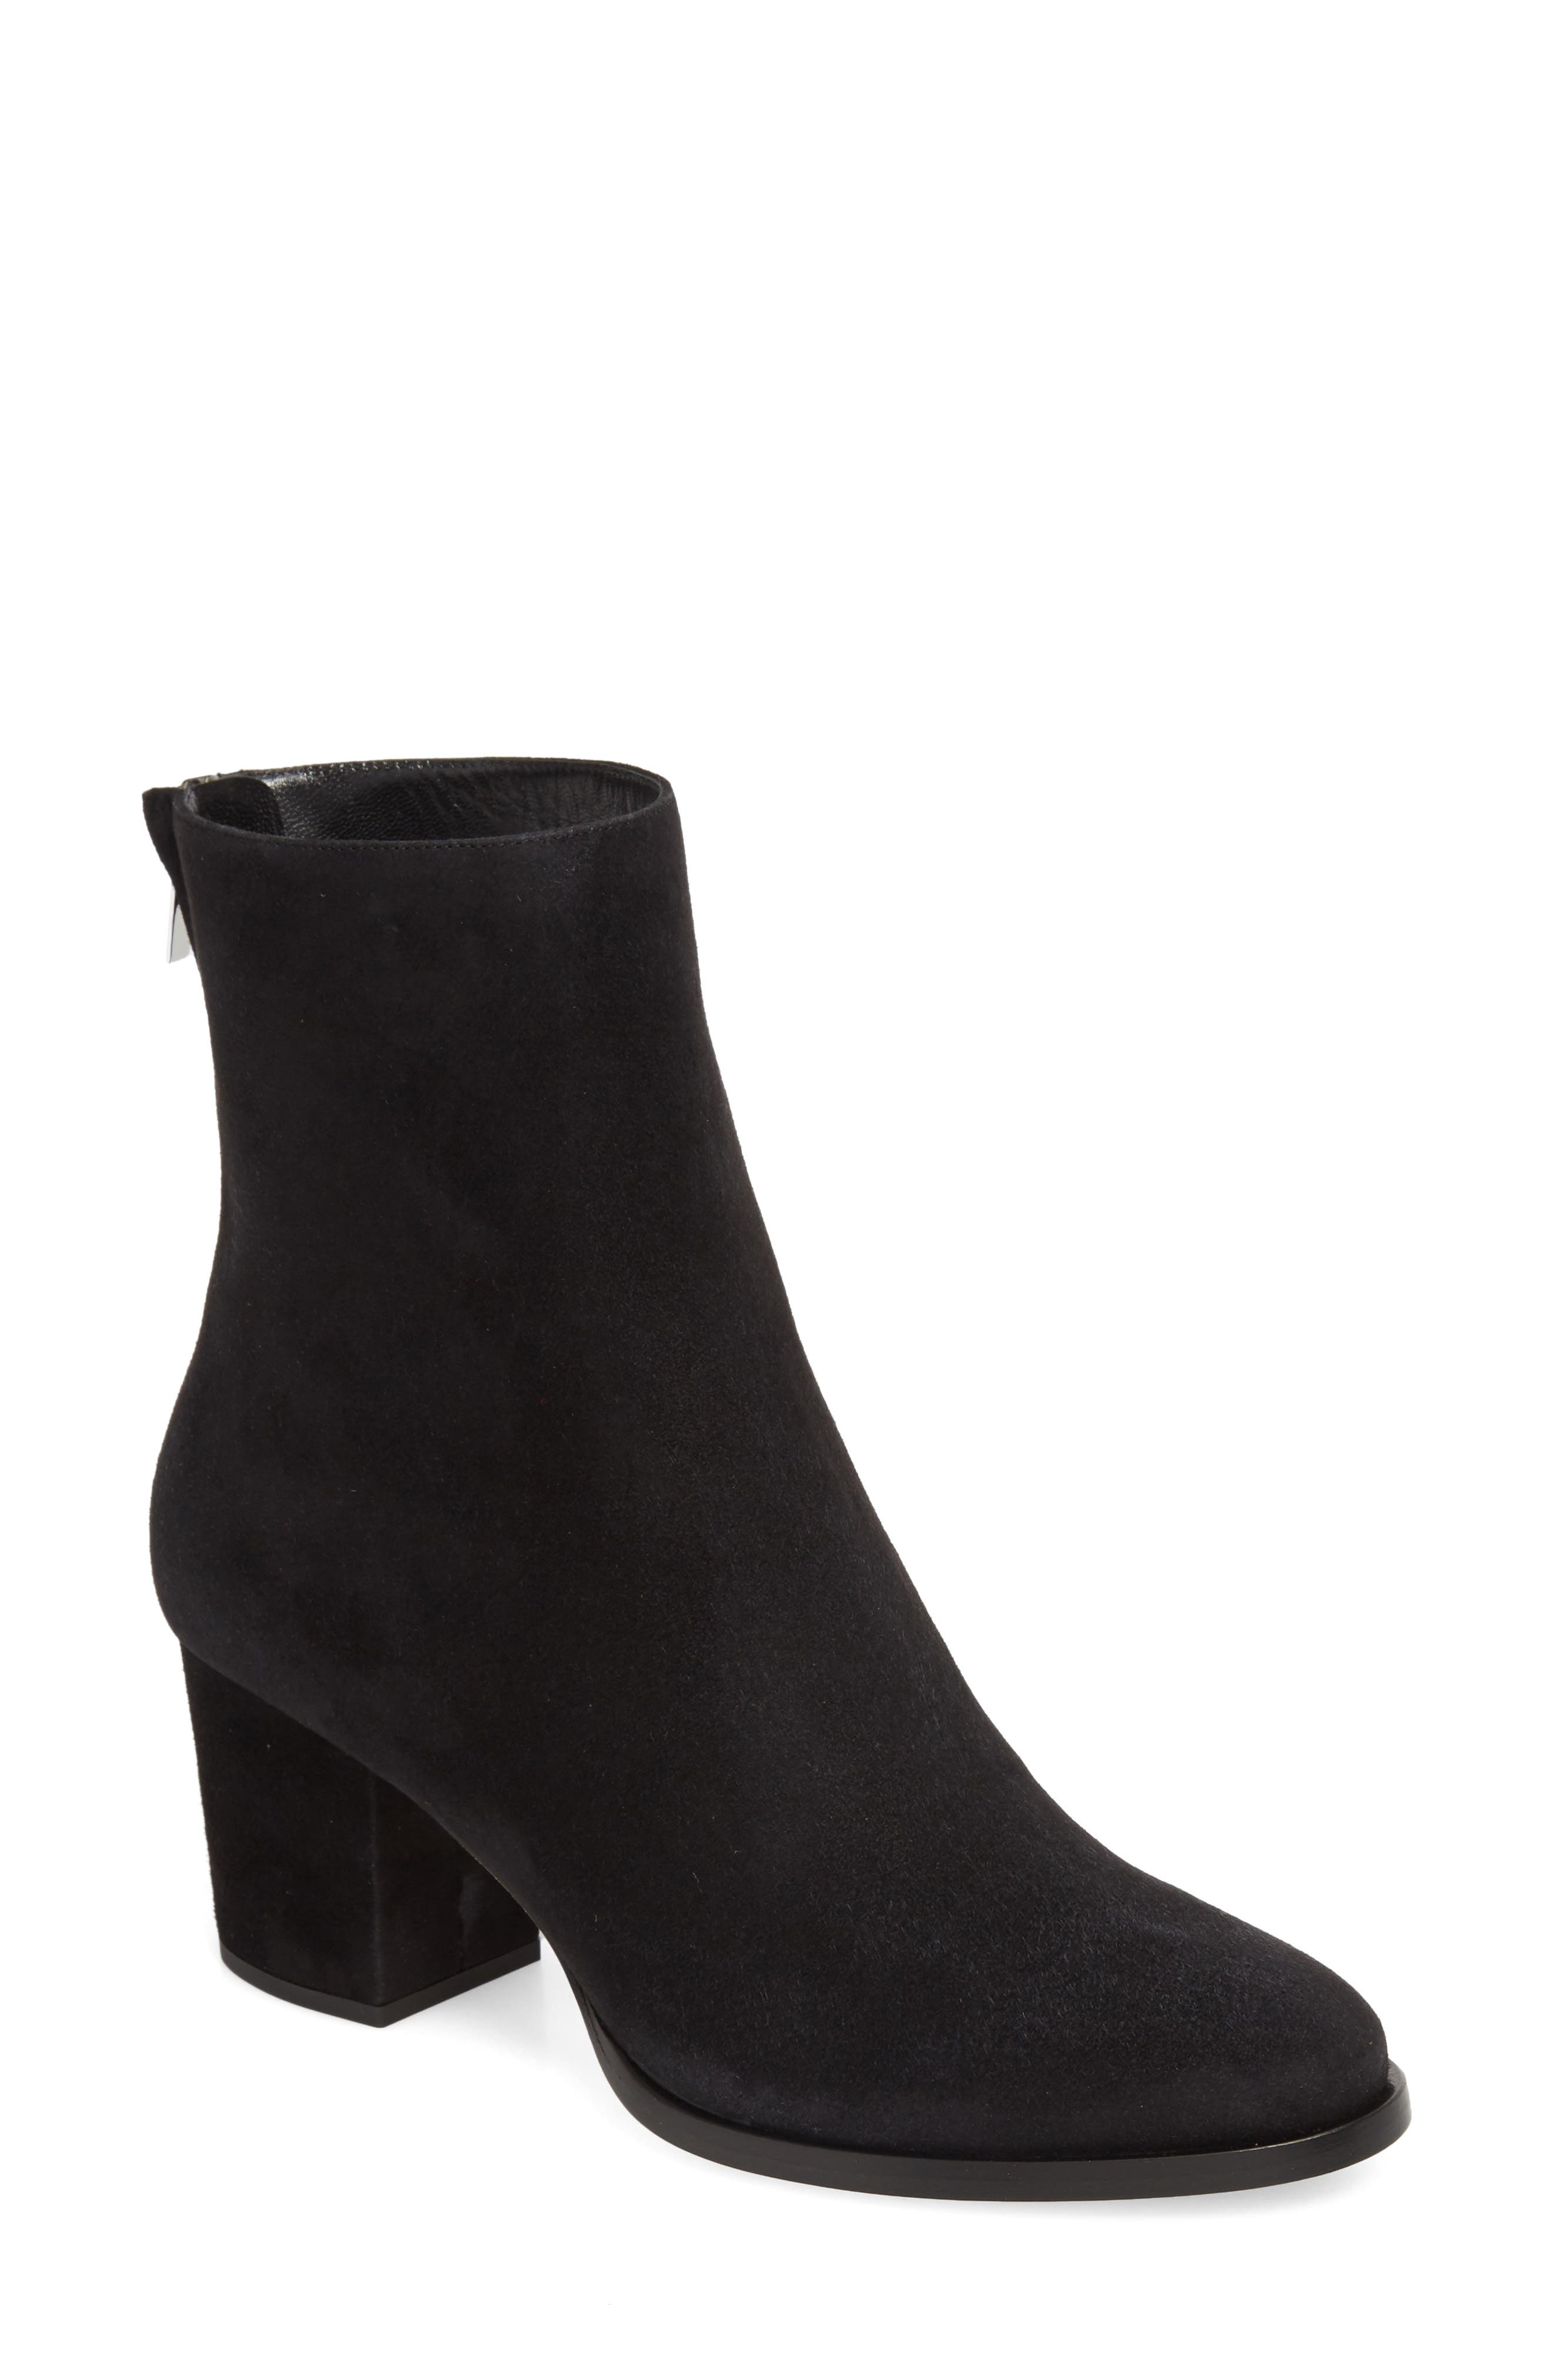 Jimmy choo Women's Madalie Boot